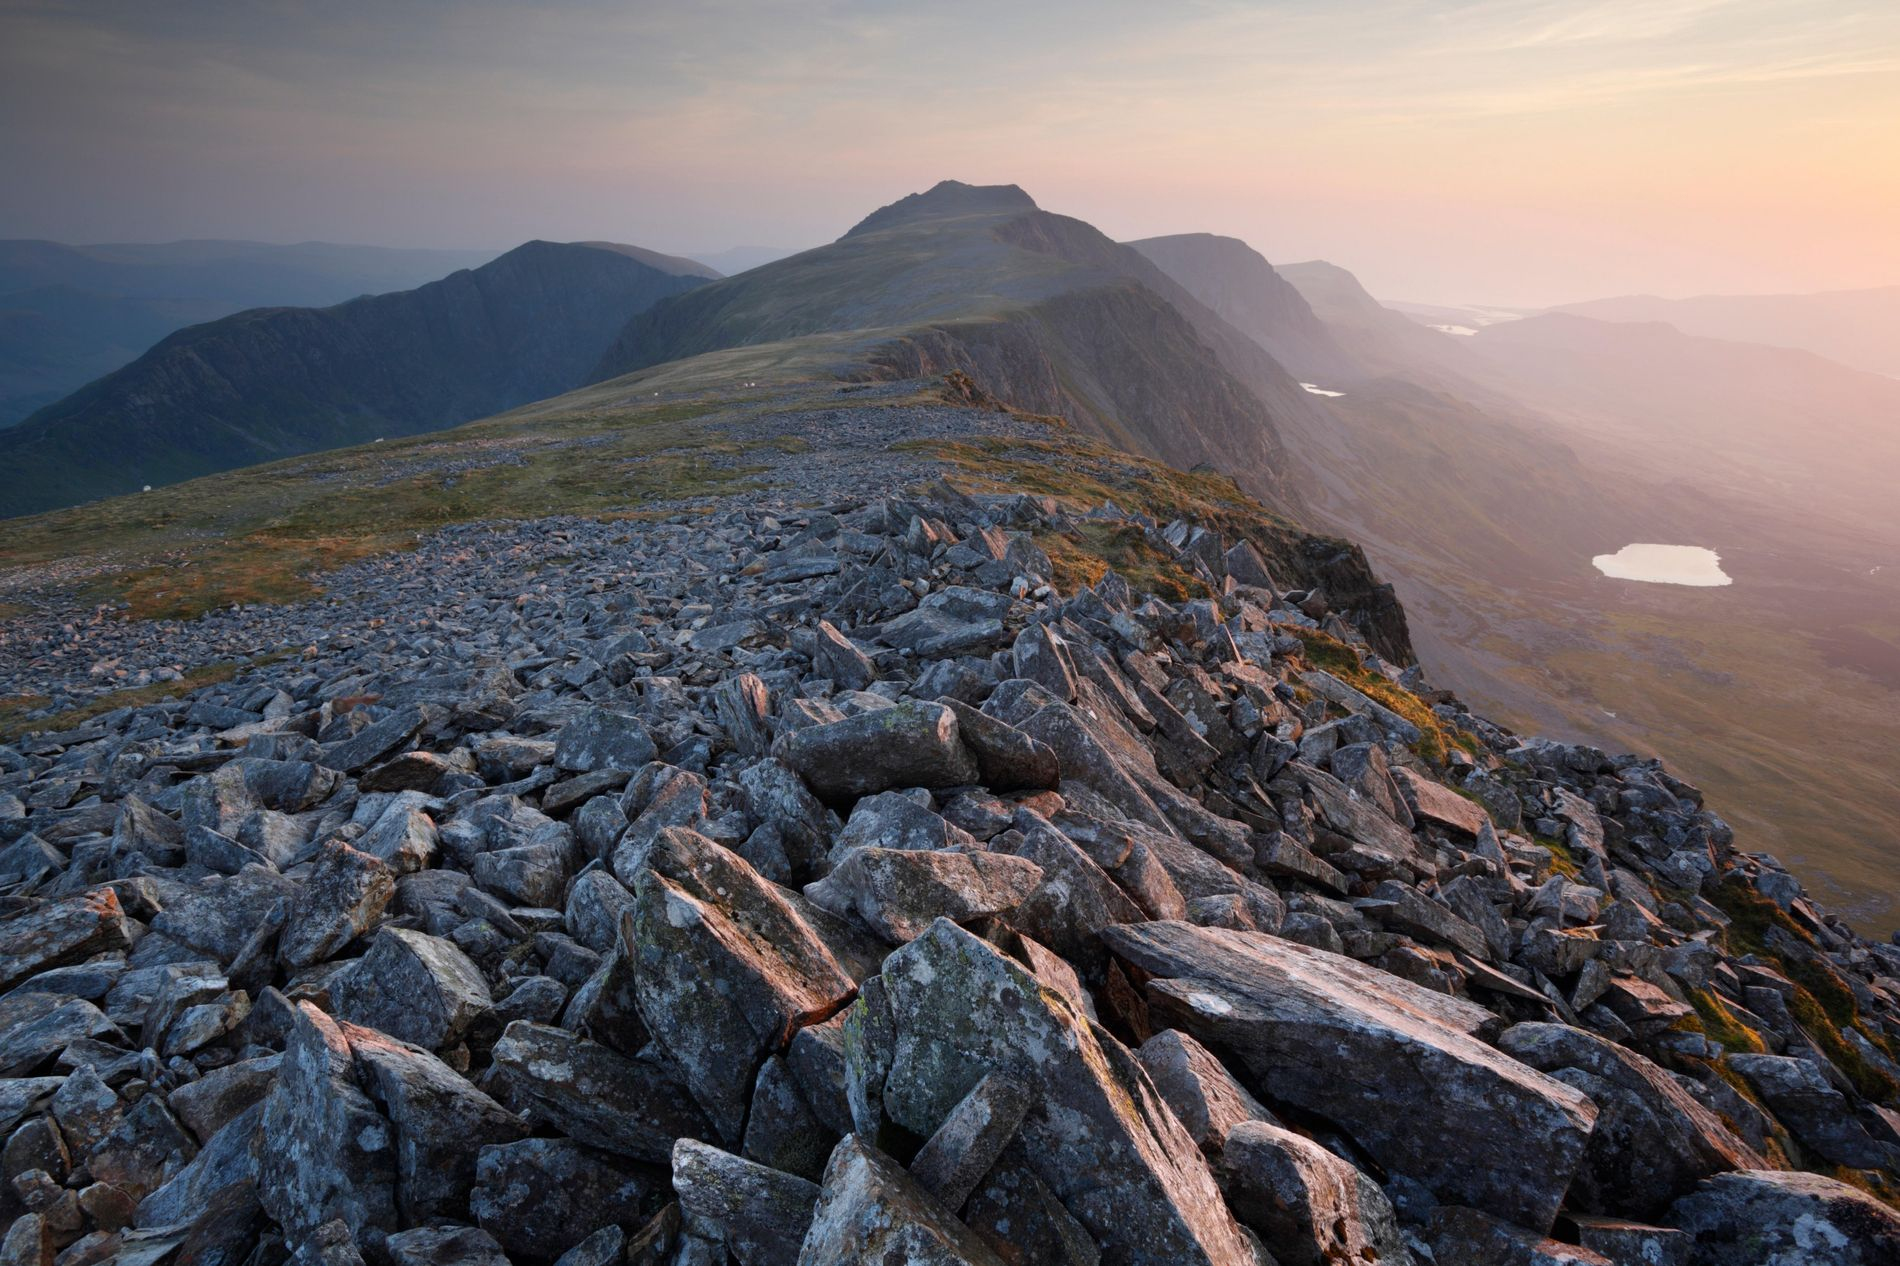 A view along the ridgeline of Cadair Idris, the sprawling mountain range that forms the southern ...